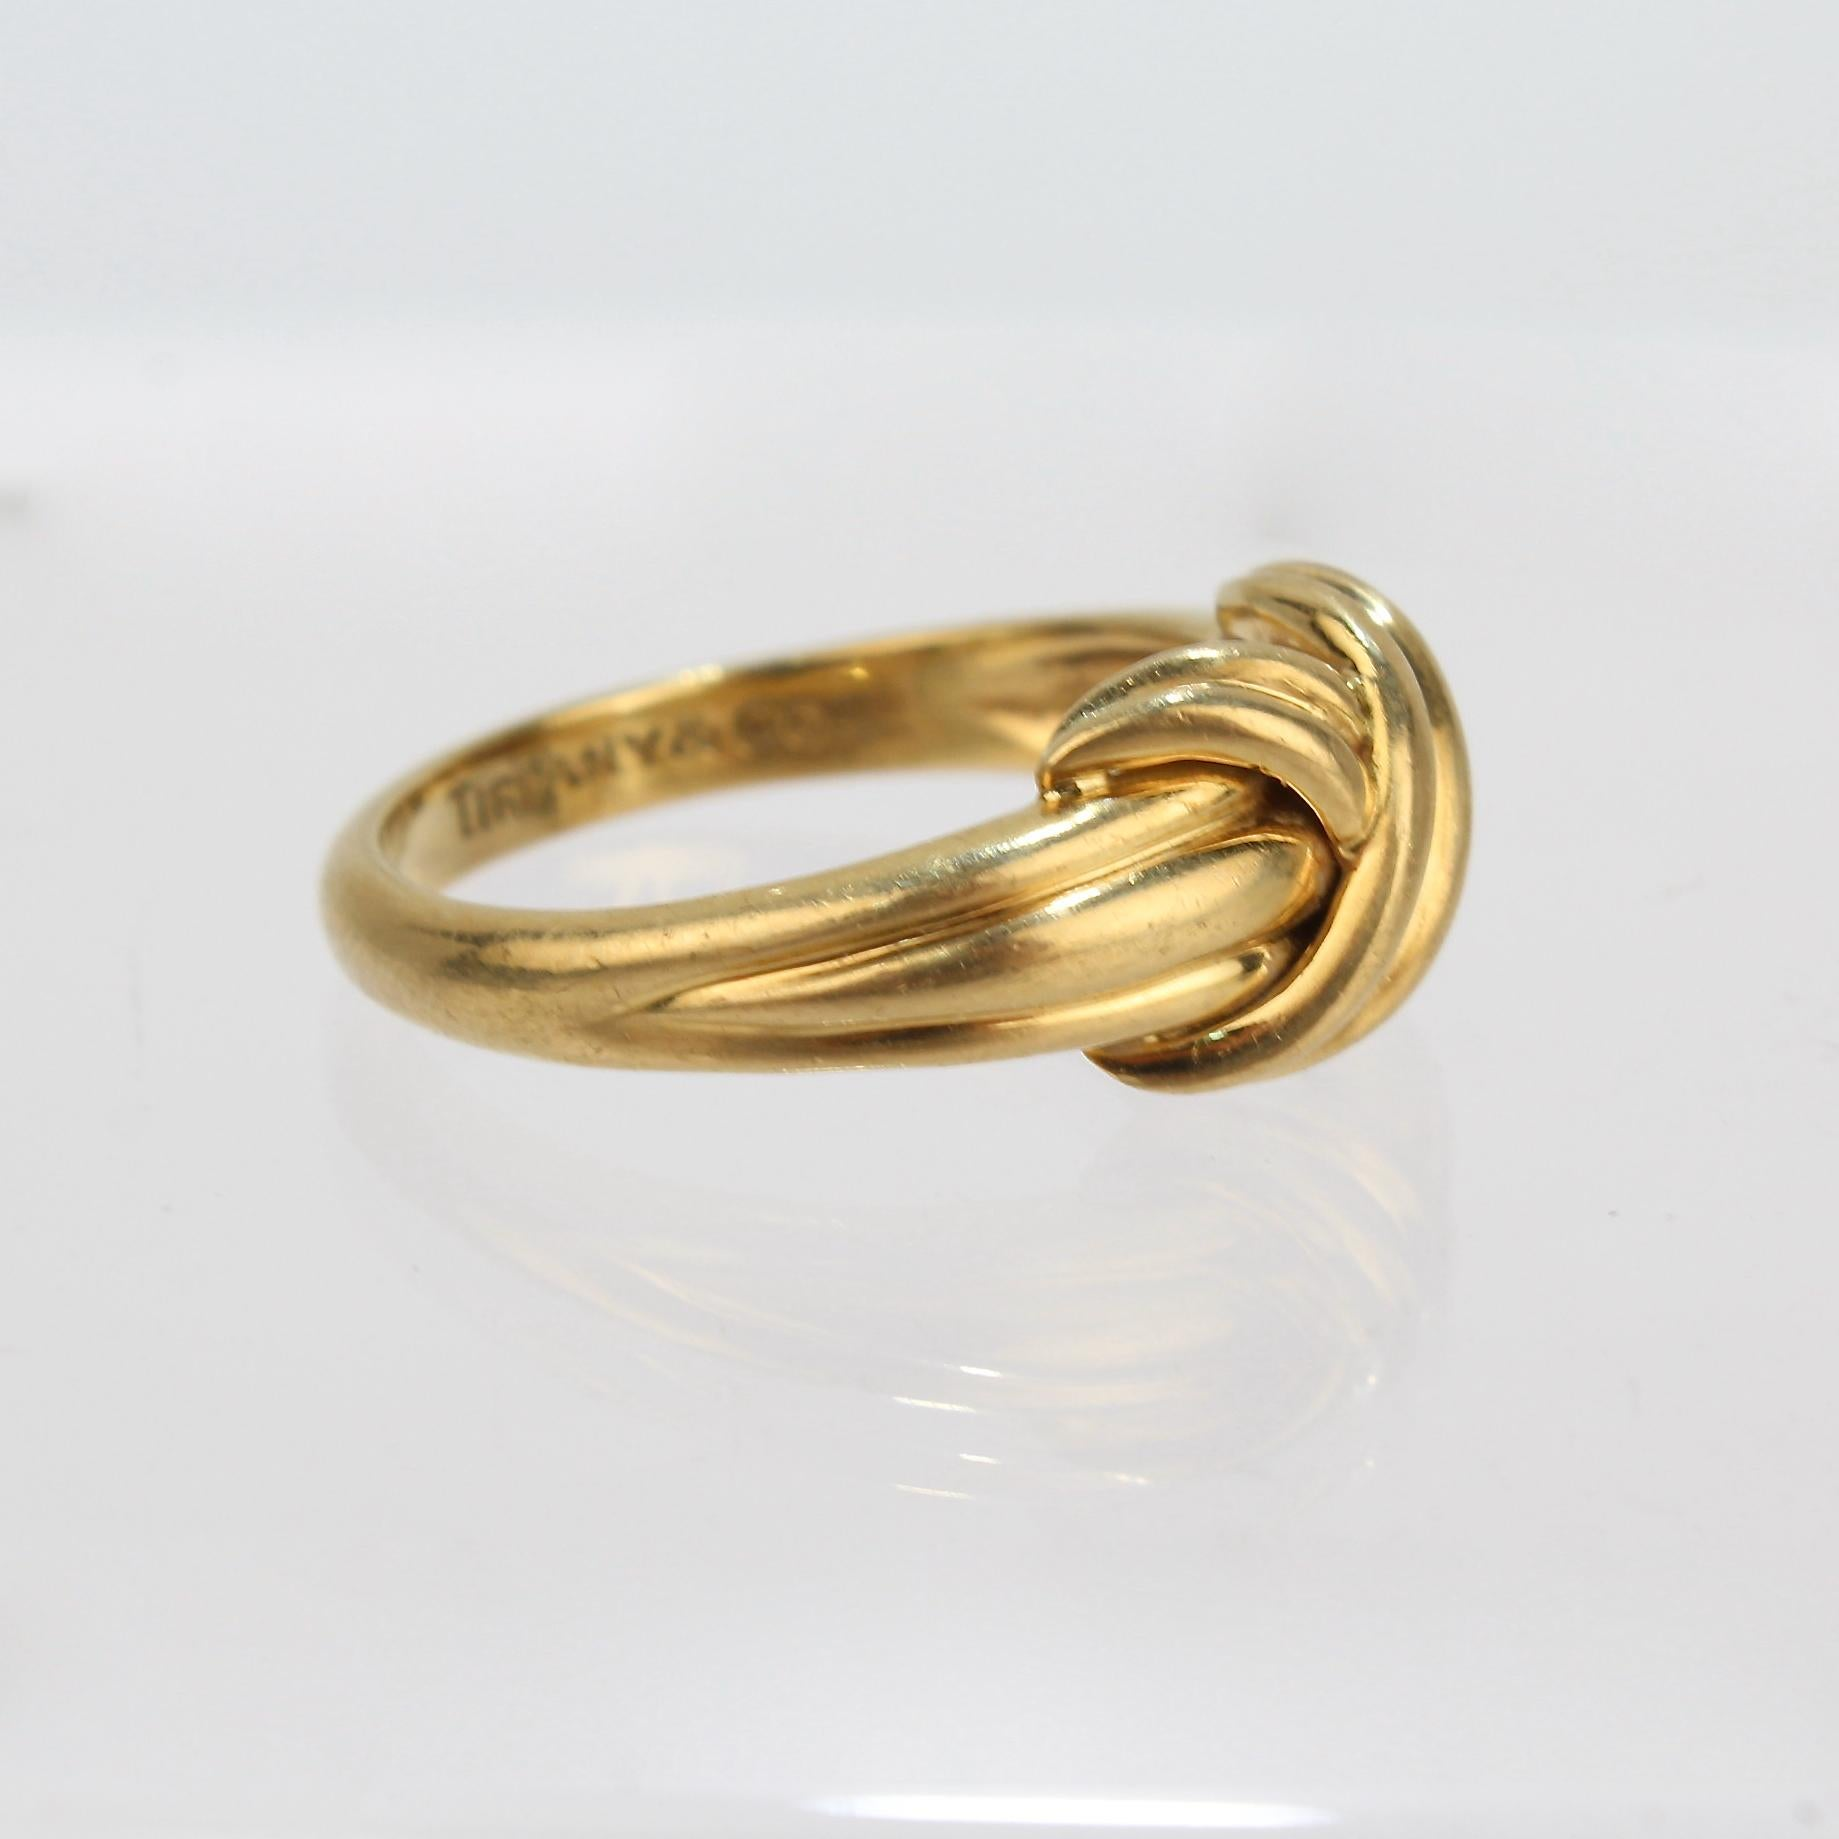 Tiffany And Co 18 Karat Gold Love Knot Ring For Sale At 1stdibs